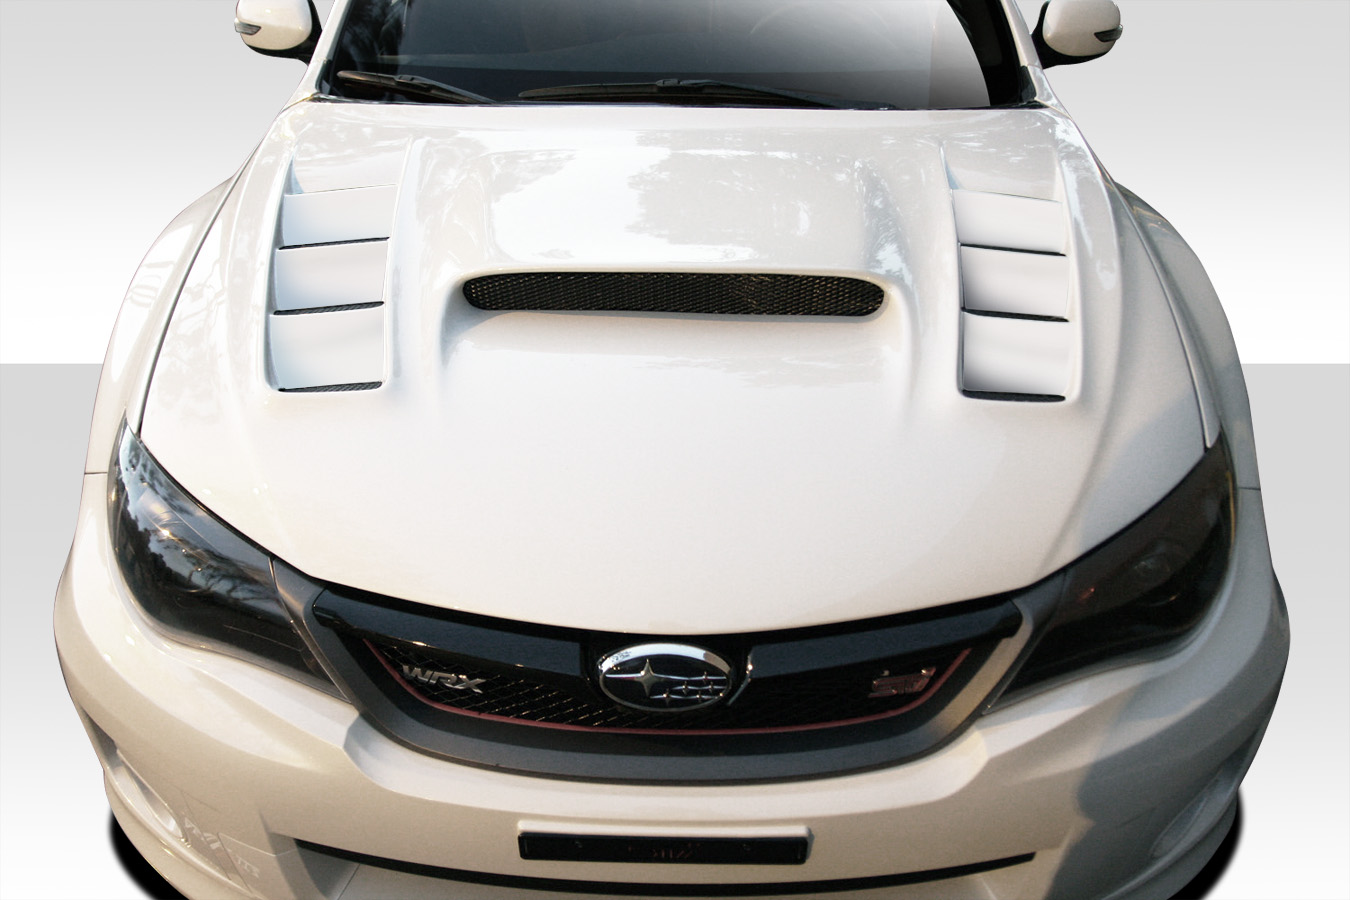 2008-2014 Subaru WRX Body Kit